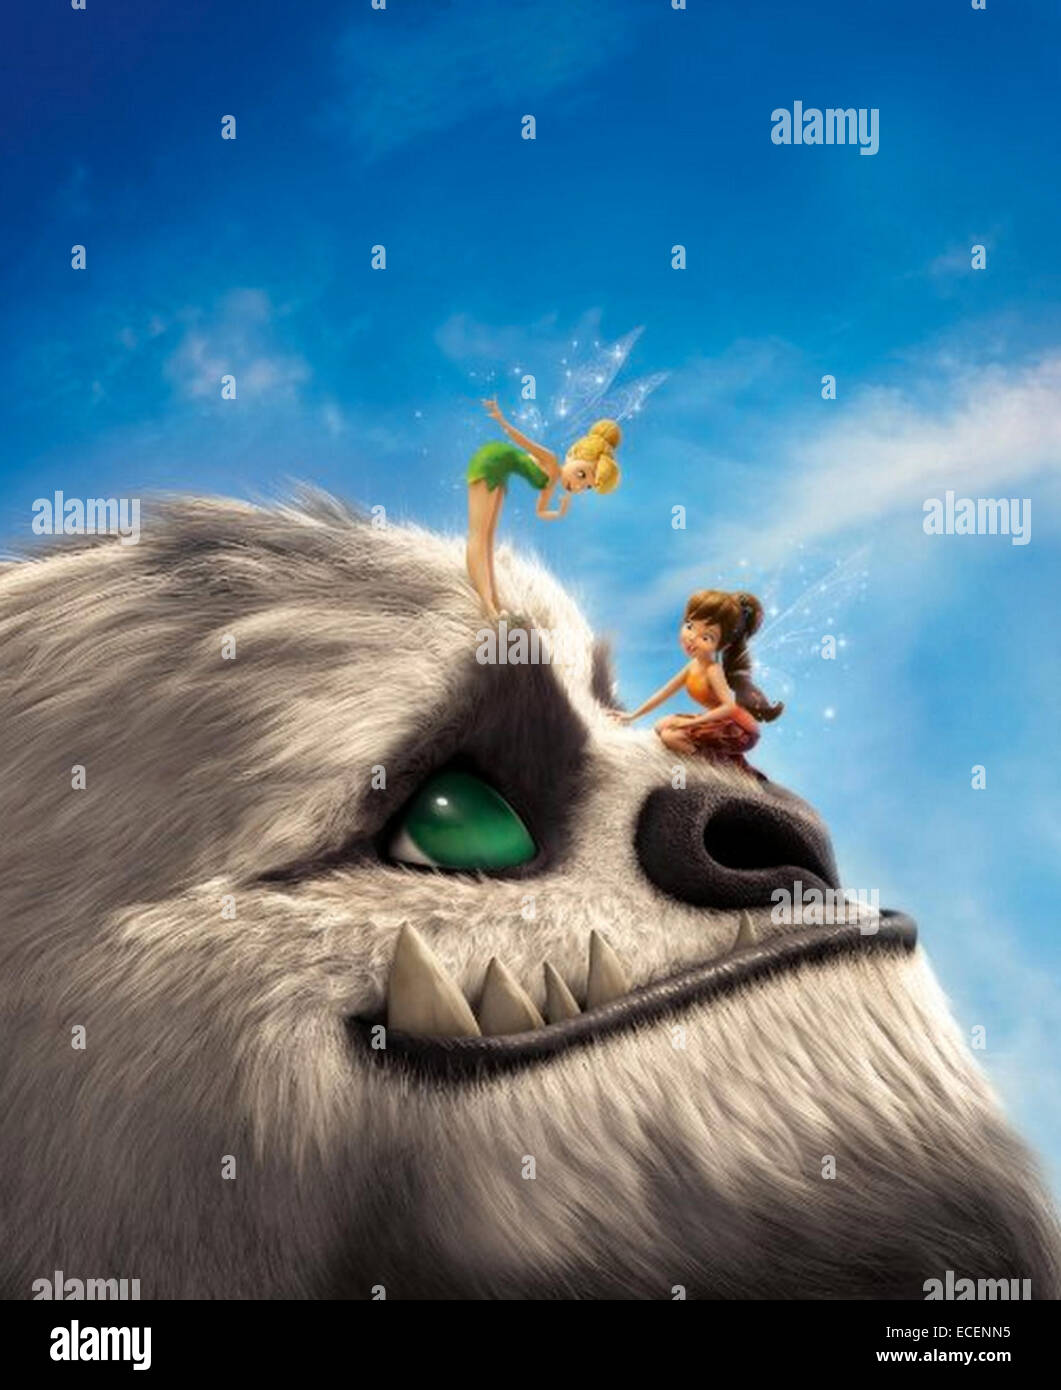 LEGEND OF THE NEVERBEAST 2014 Disney Enterprises cartoon - Stock Image